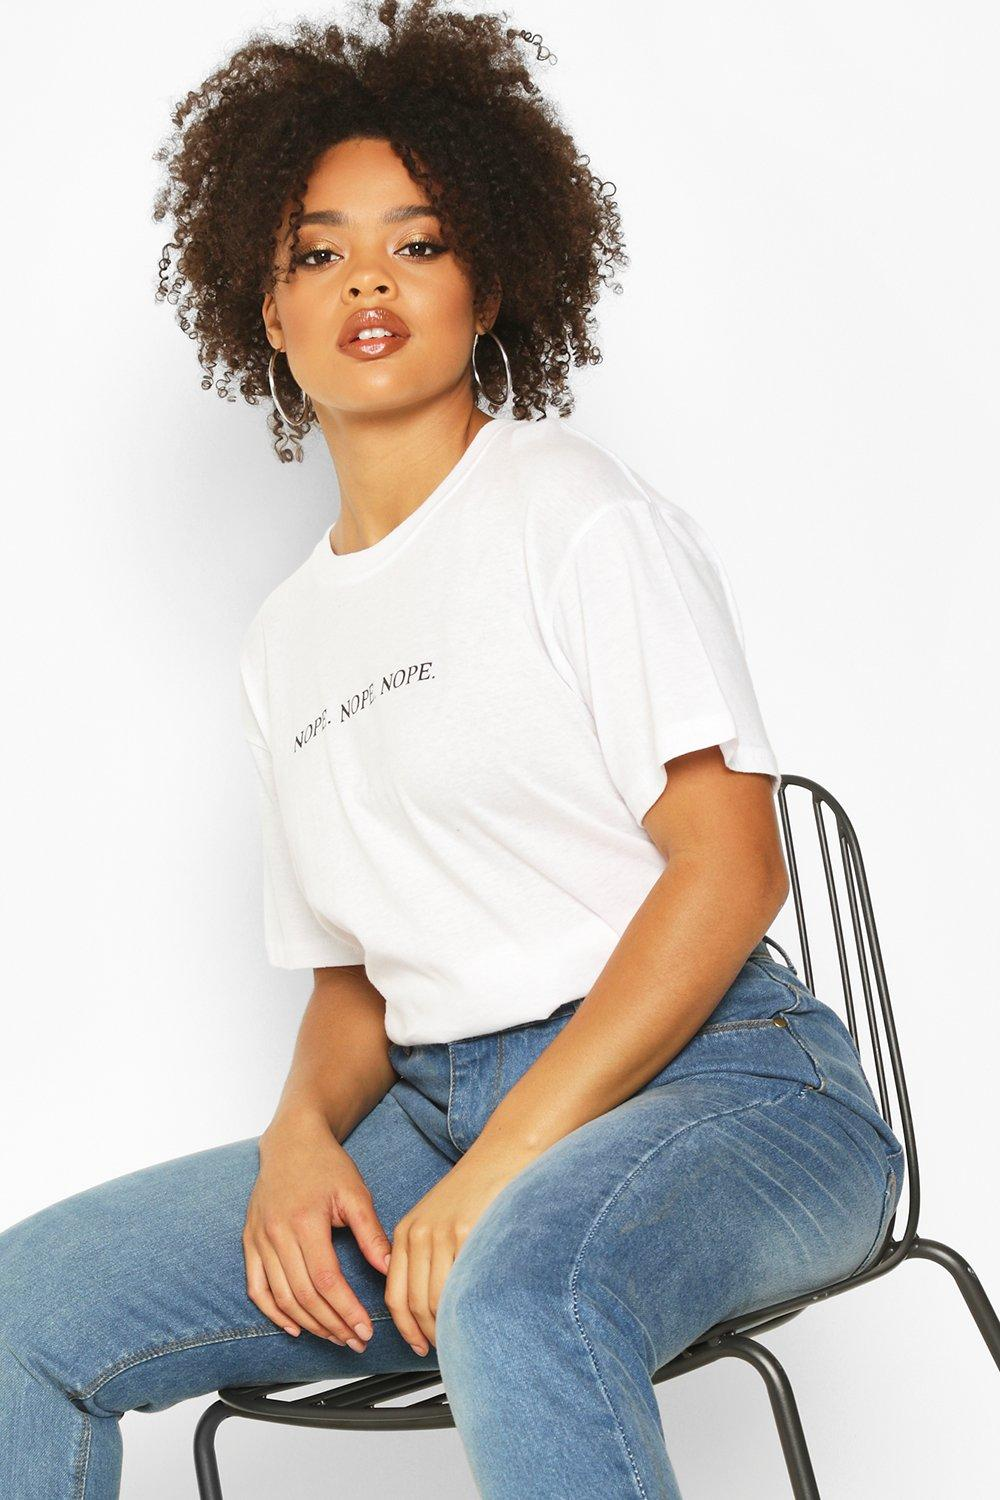 Plus Nope Nope Nope Slogan T Shirt by Boohoo